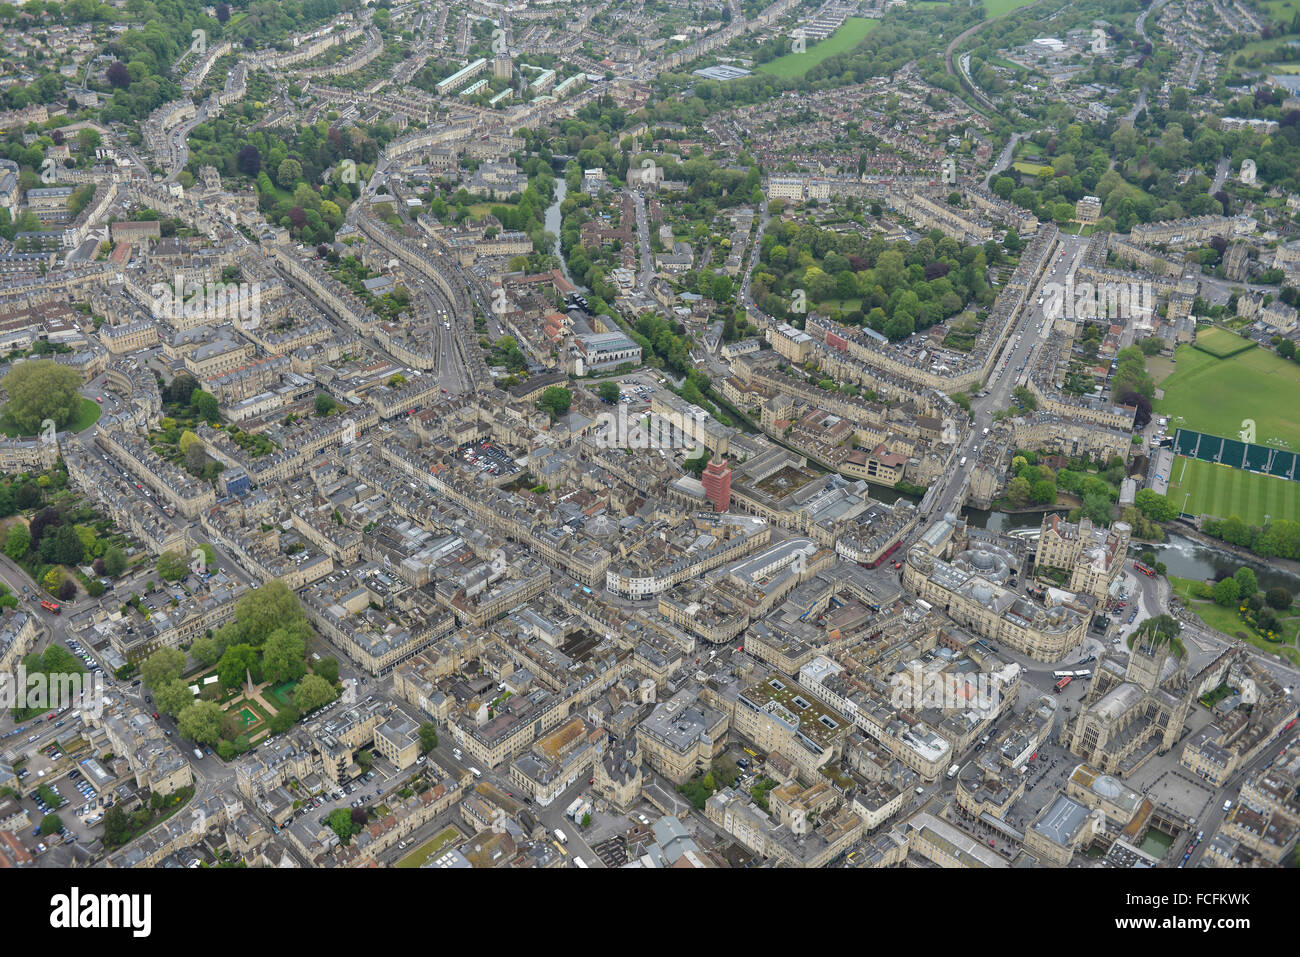 General views of the Somerset city of Bath - Stock Image